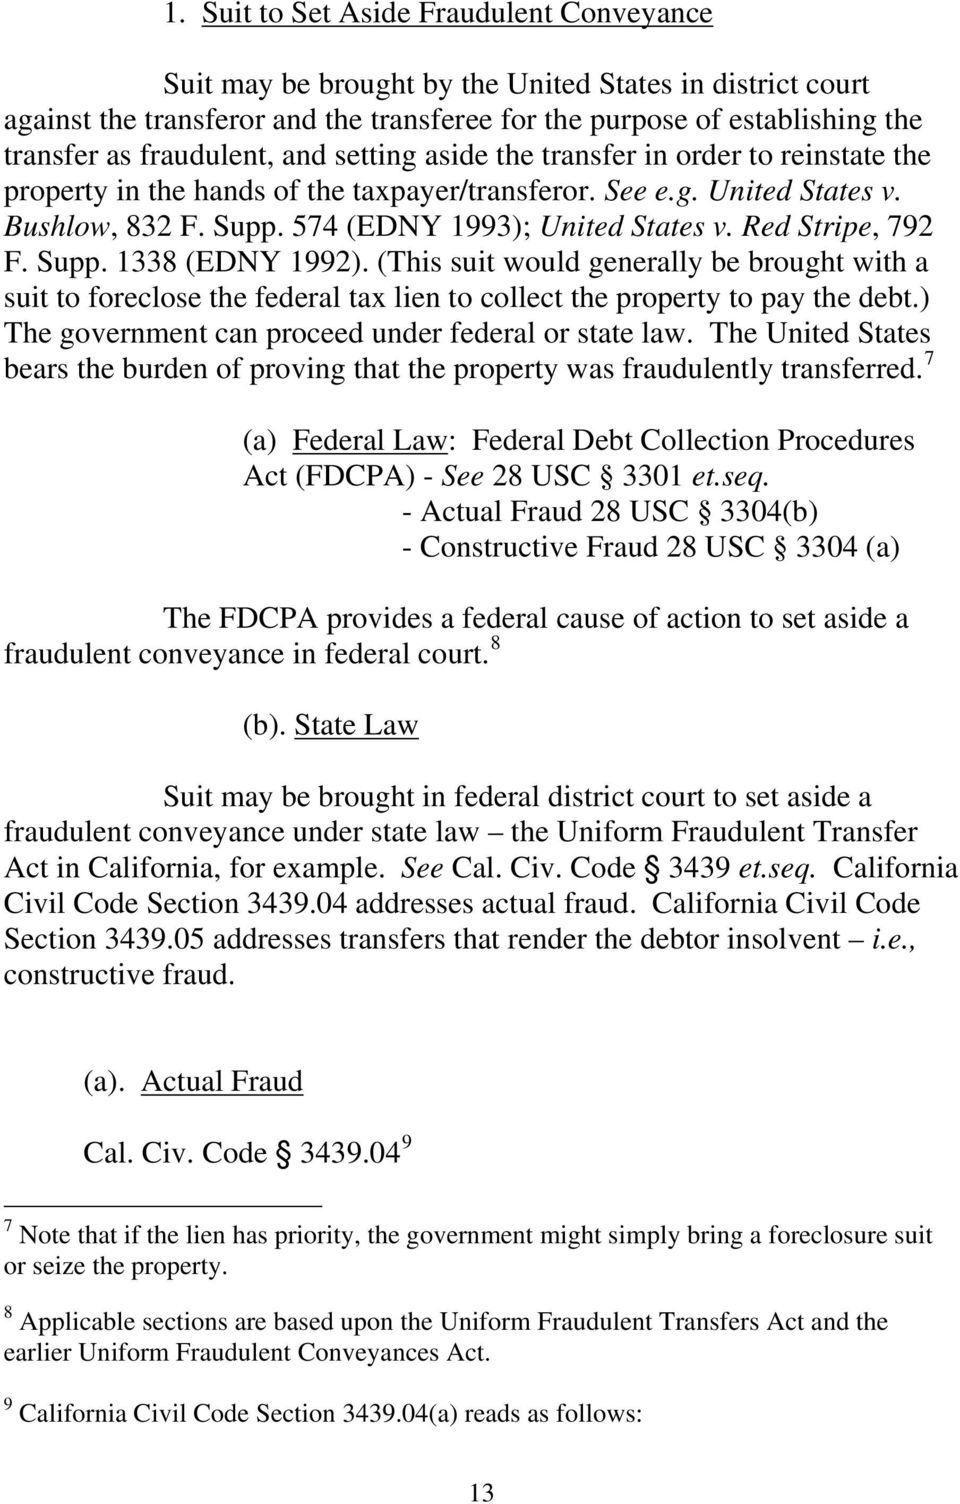 Red Stripe, 792 F. Supp. 1338 (EDNY 1992). (This suit would generally be brought with a suit to foreclose the federal tax lien to collect the property to pay the debt.